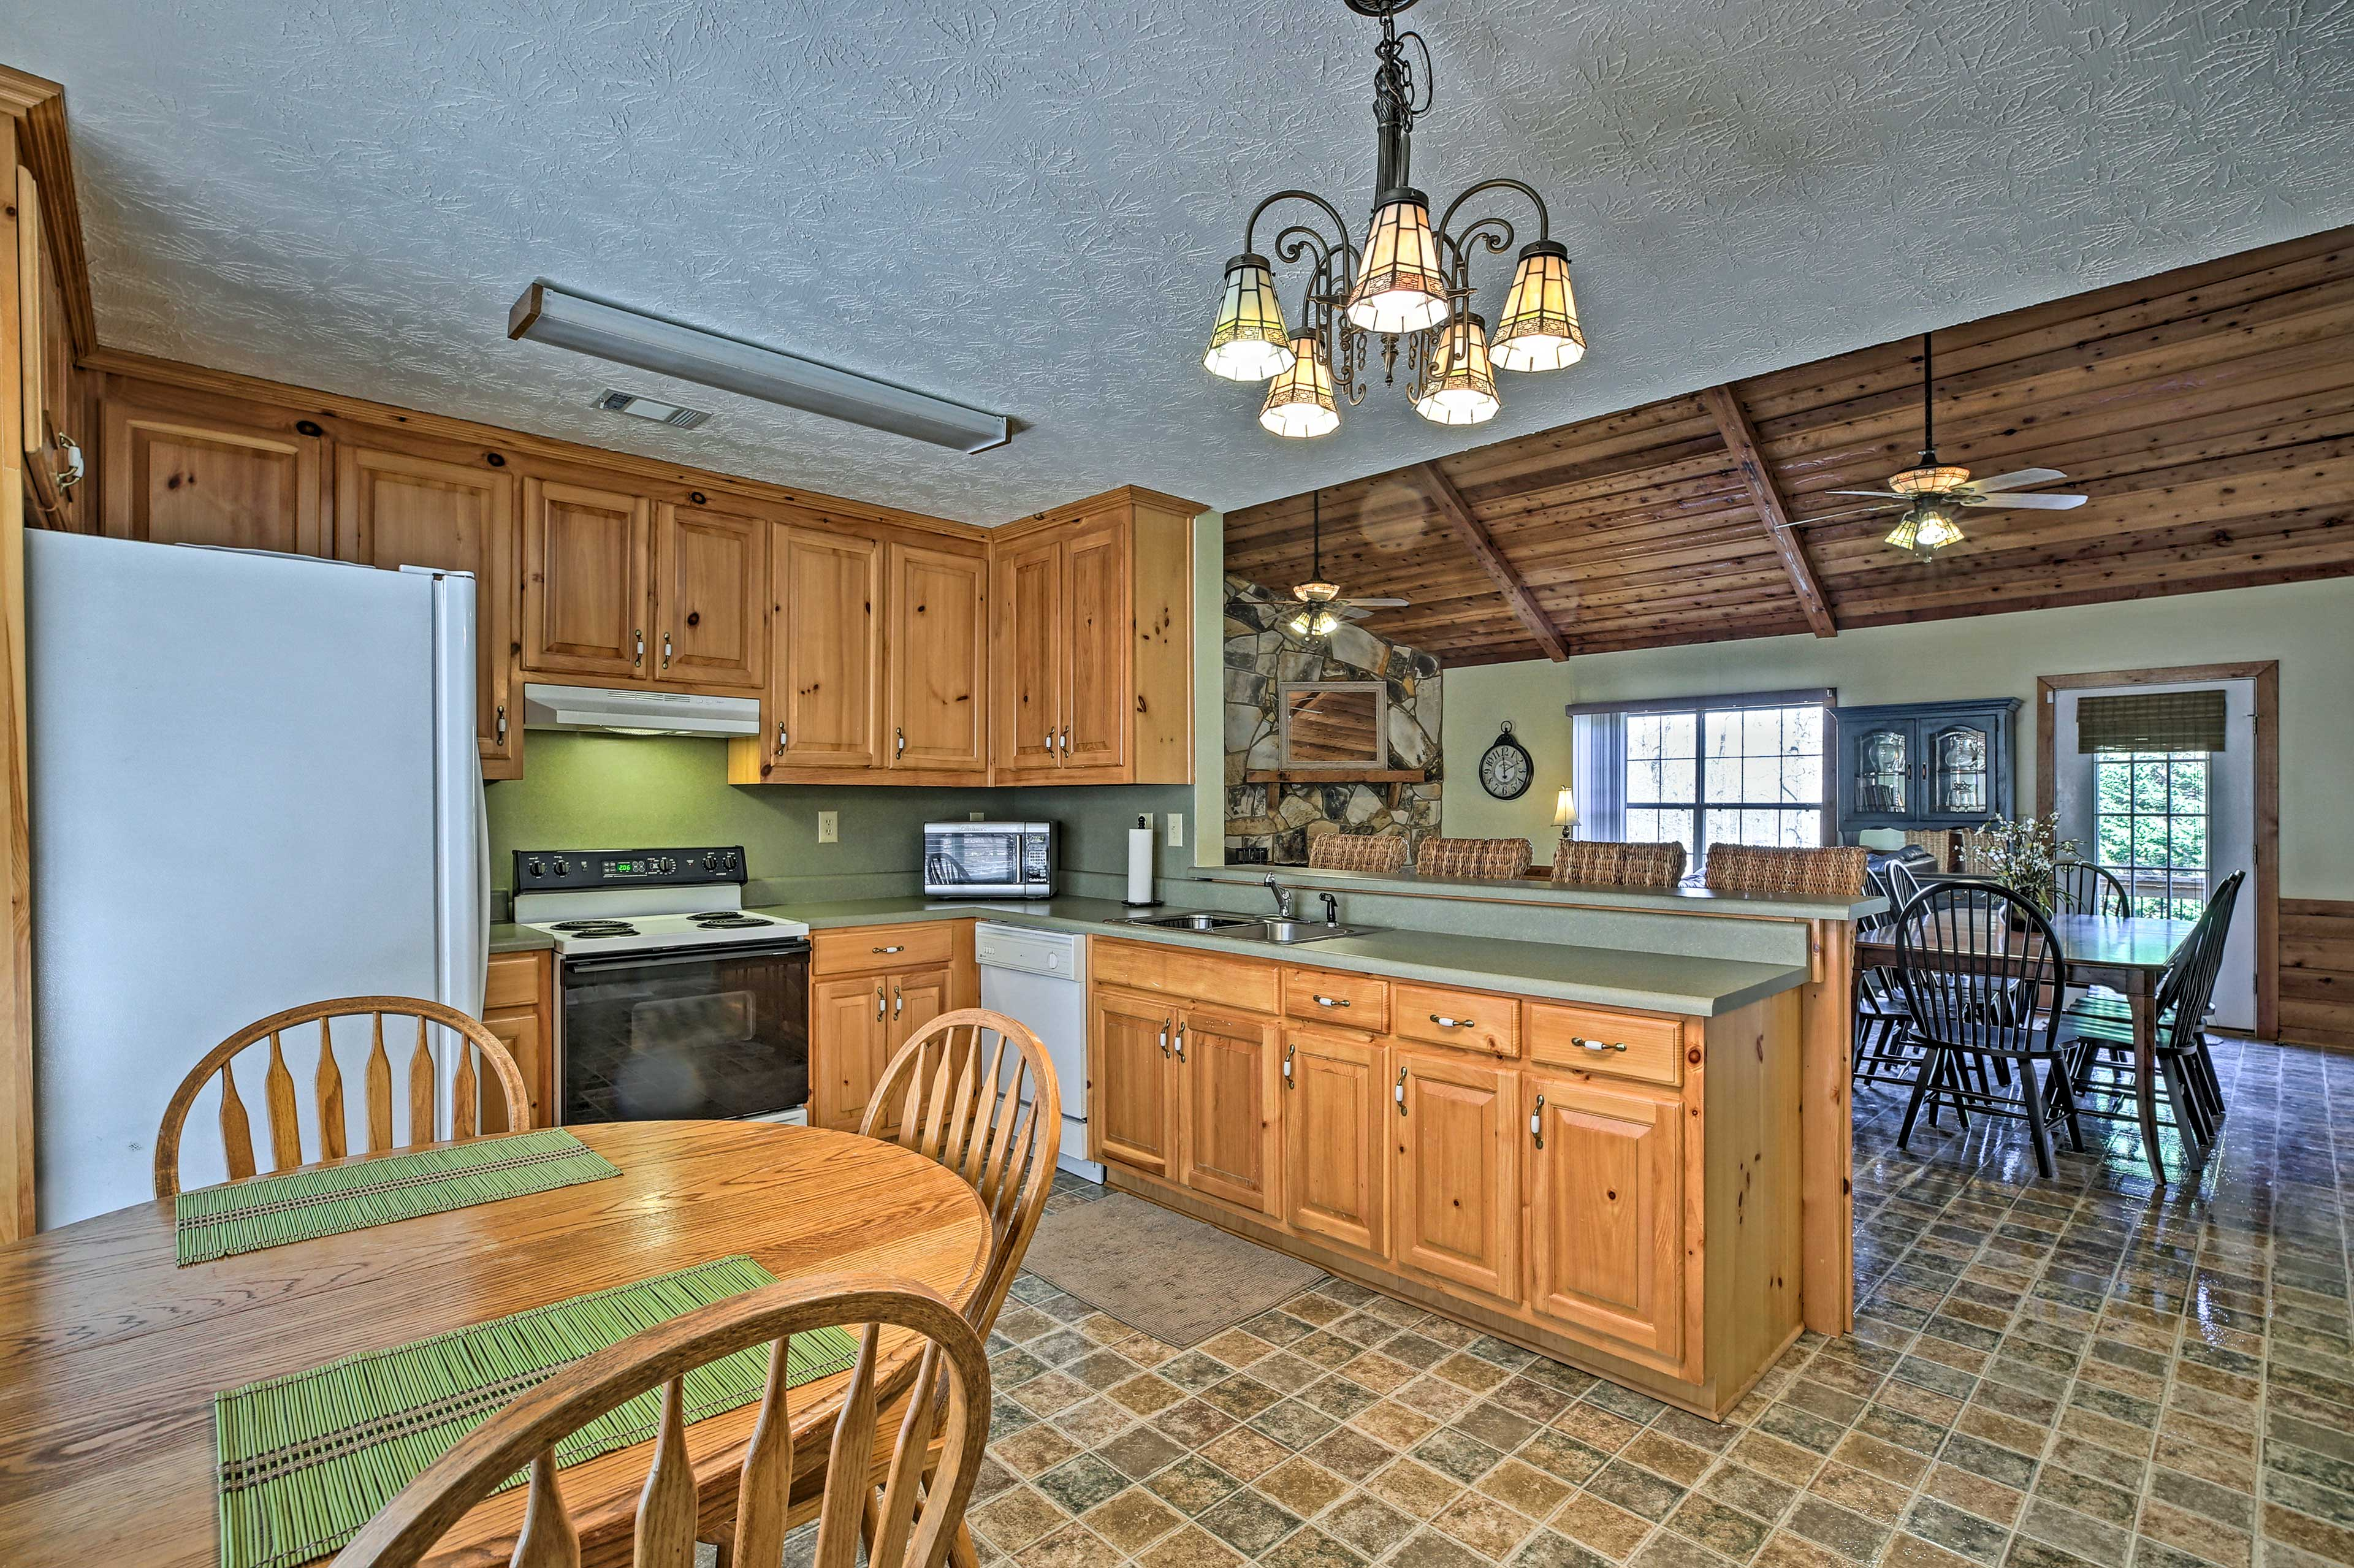 There is plenty of seating for you and your family in this home.